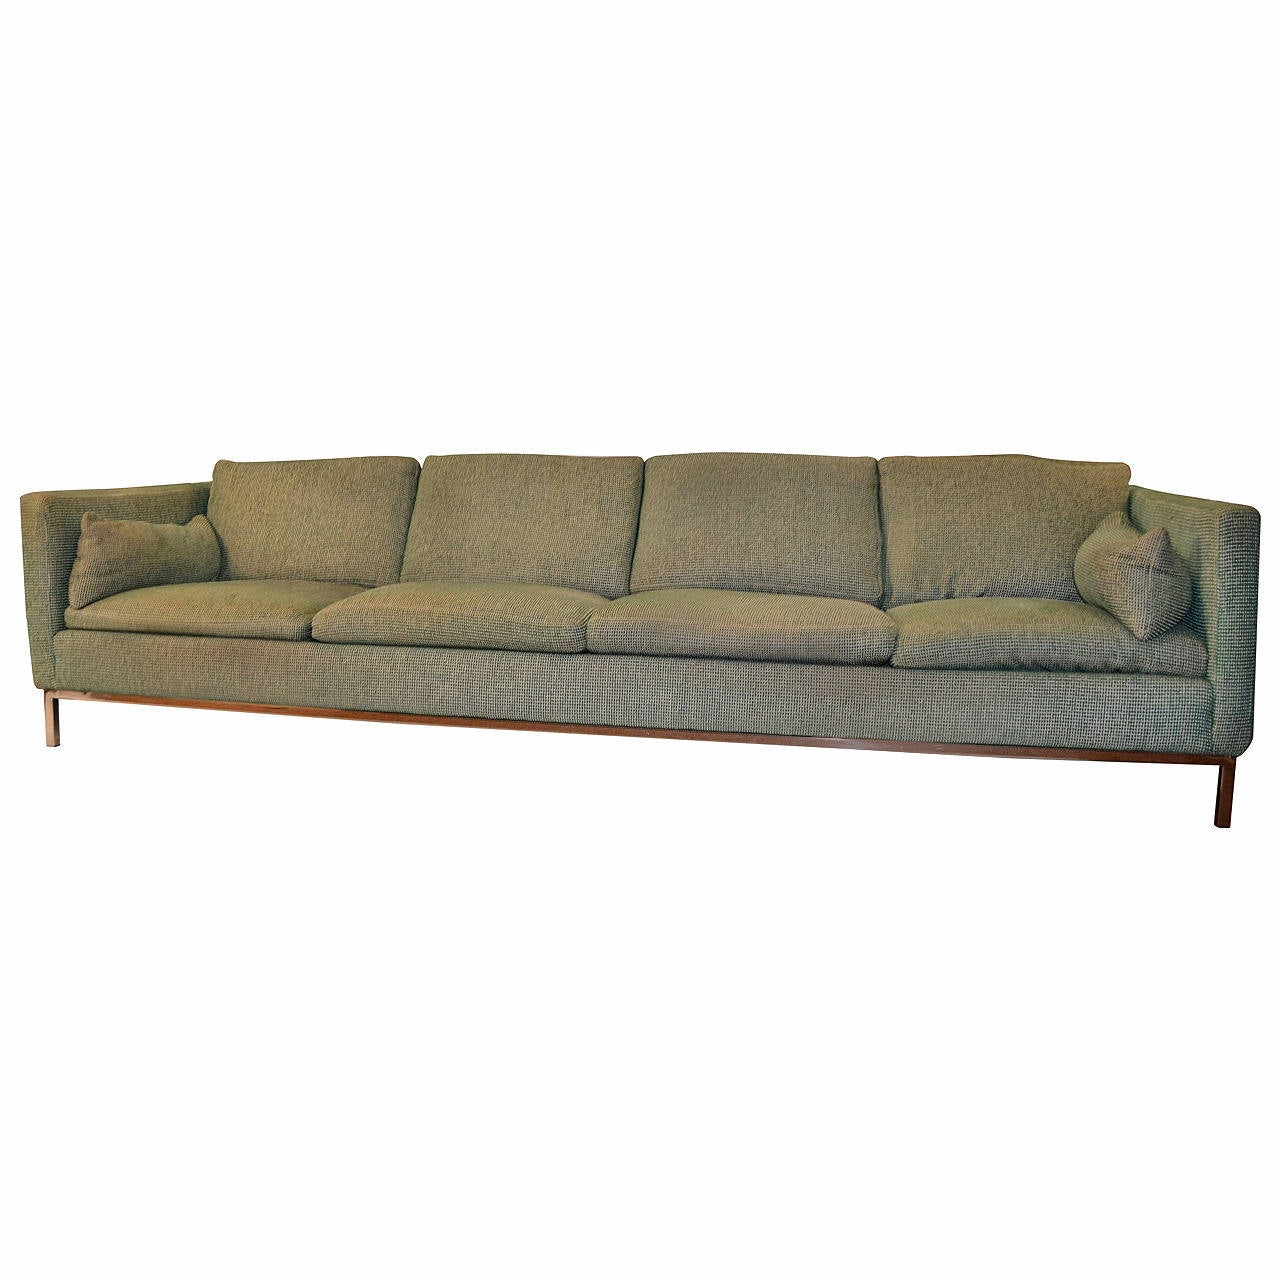 Most Comfortable Couch >> Extra Long Sofa by Steelcase at 1stdibs